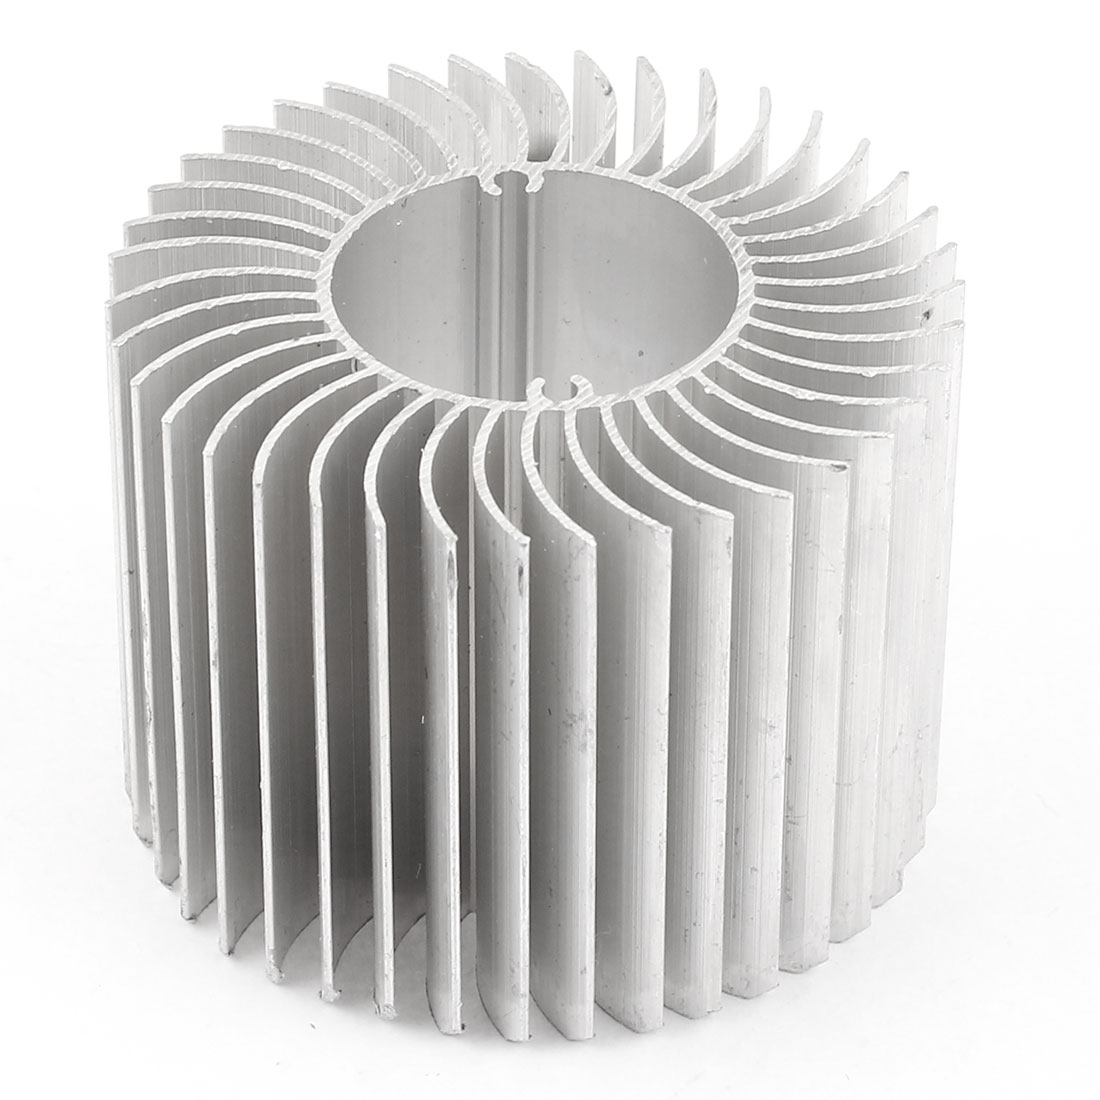 60mm x 45mm Cylinder 4W High Power LED Heatsink Aluminium Cooling Fin